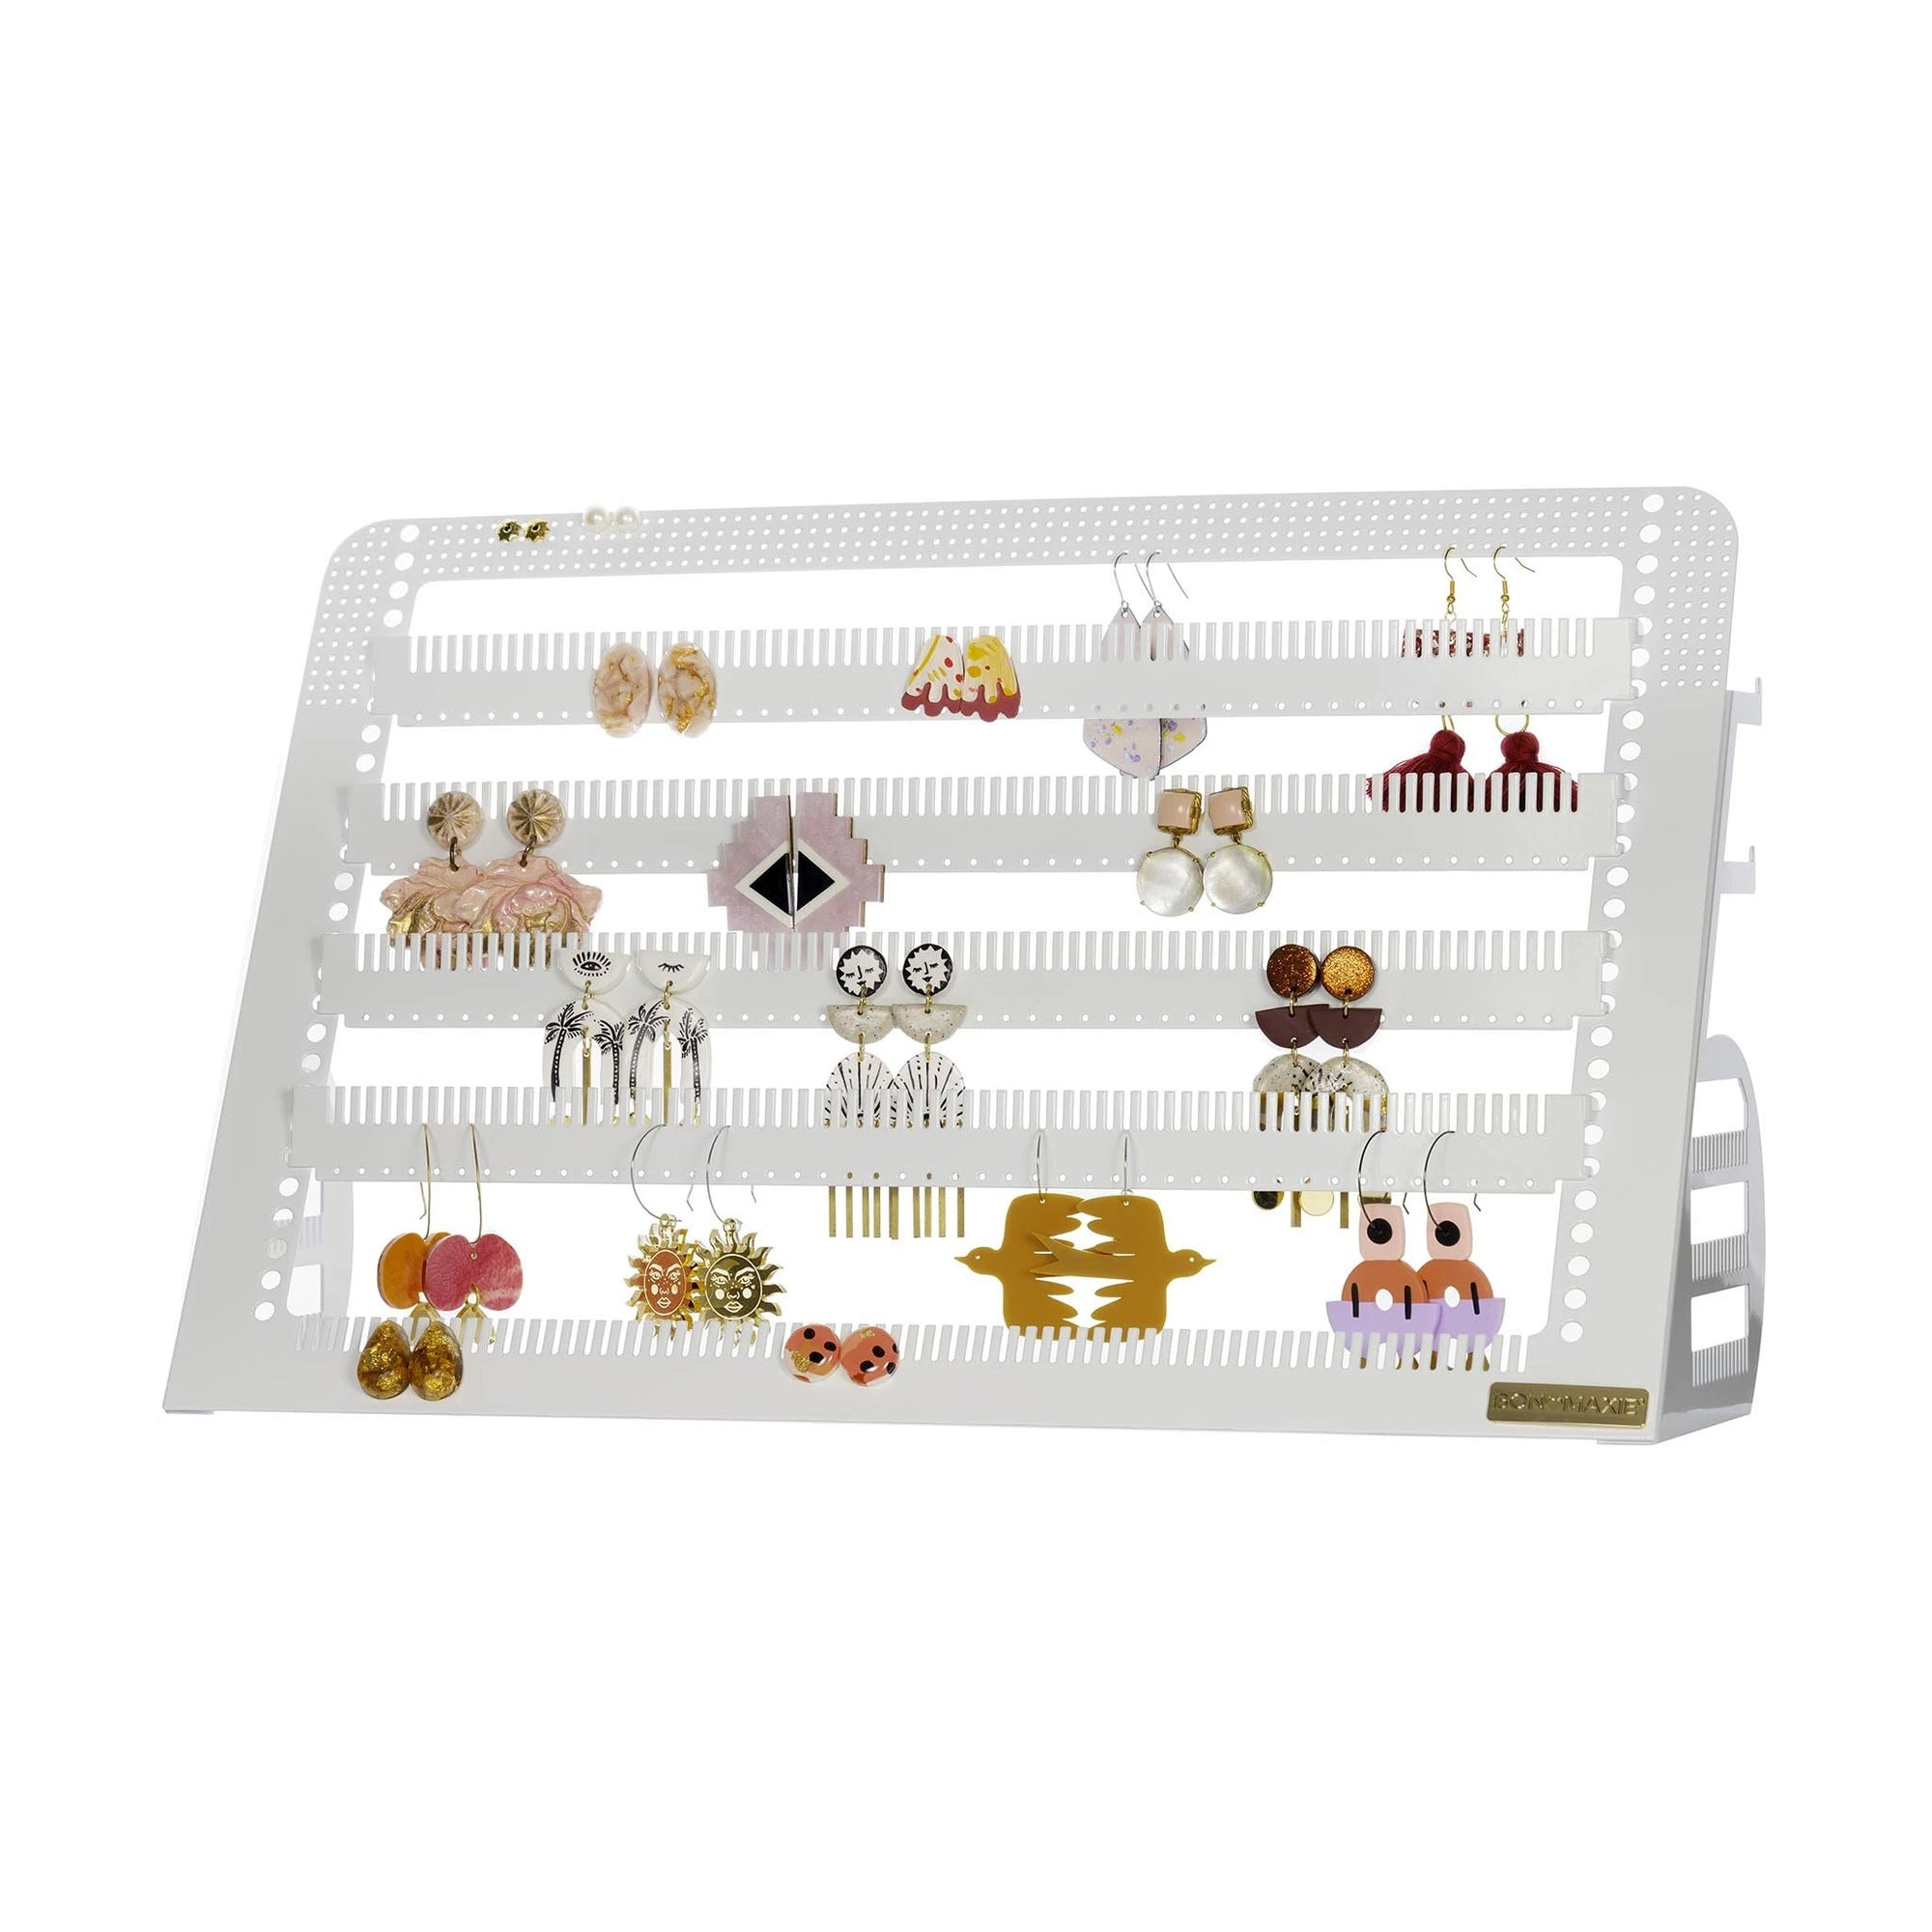 Adjustable Earring & Accessory Holder (Mega White)